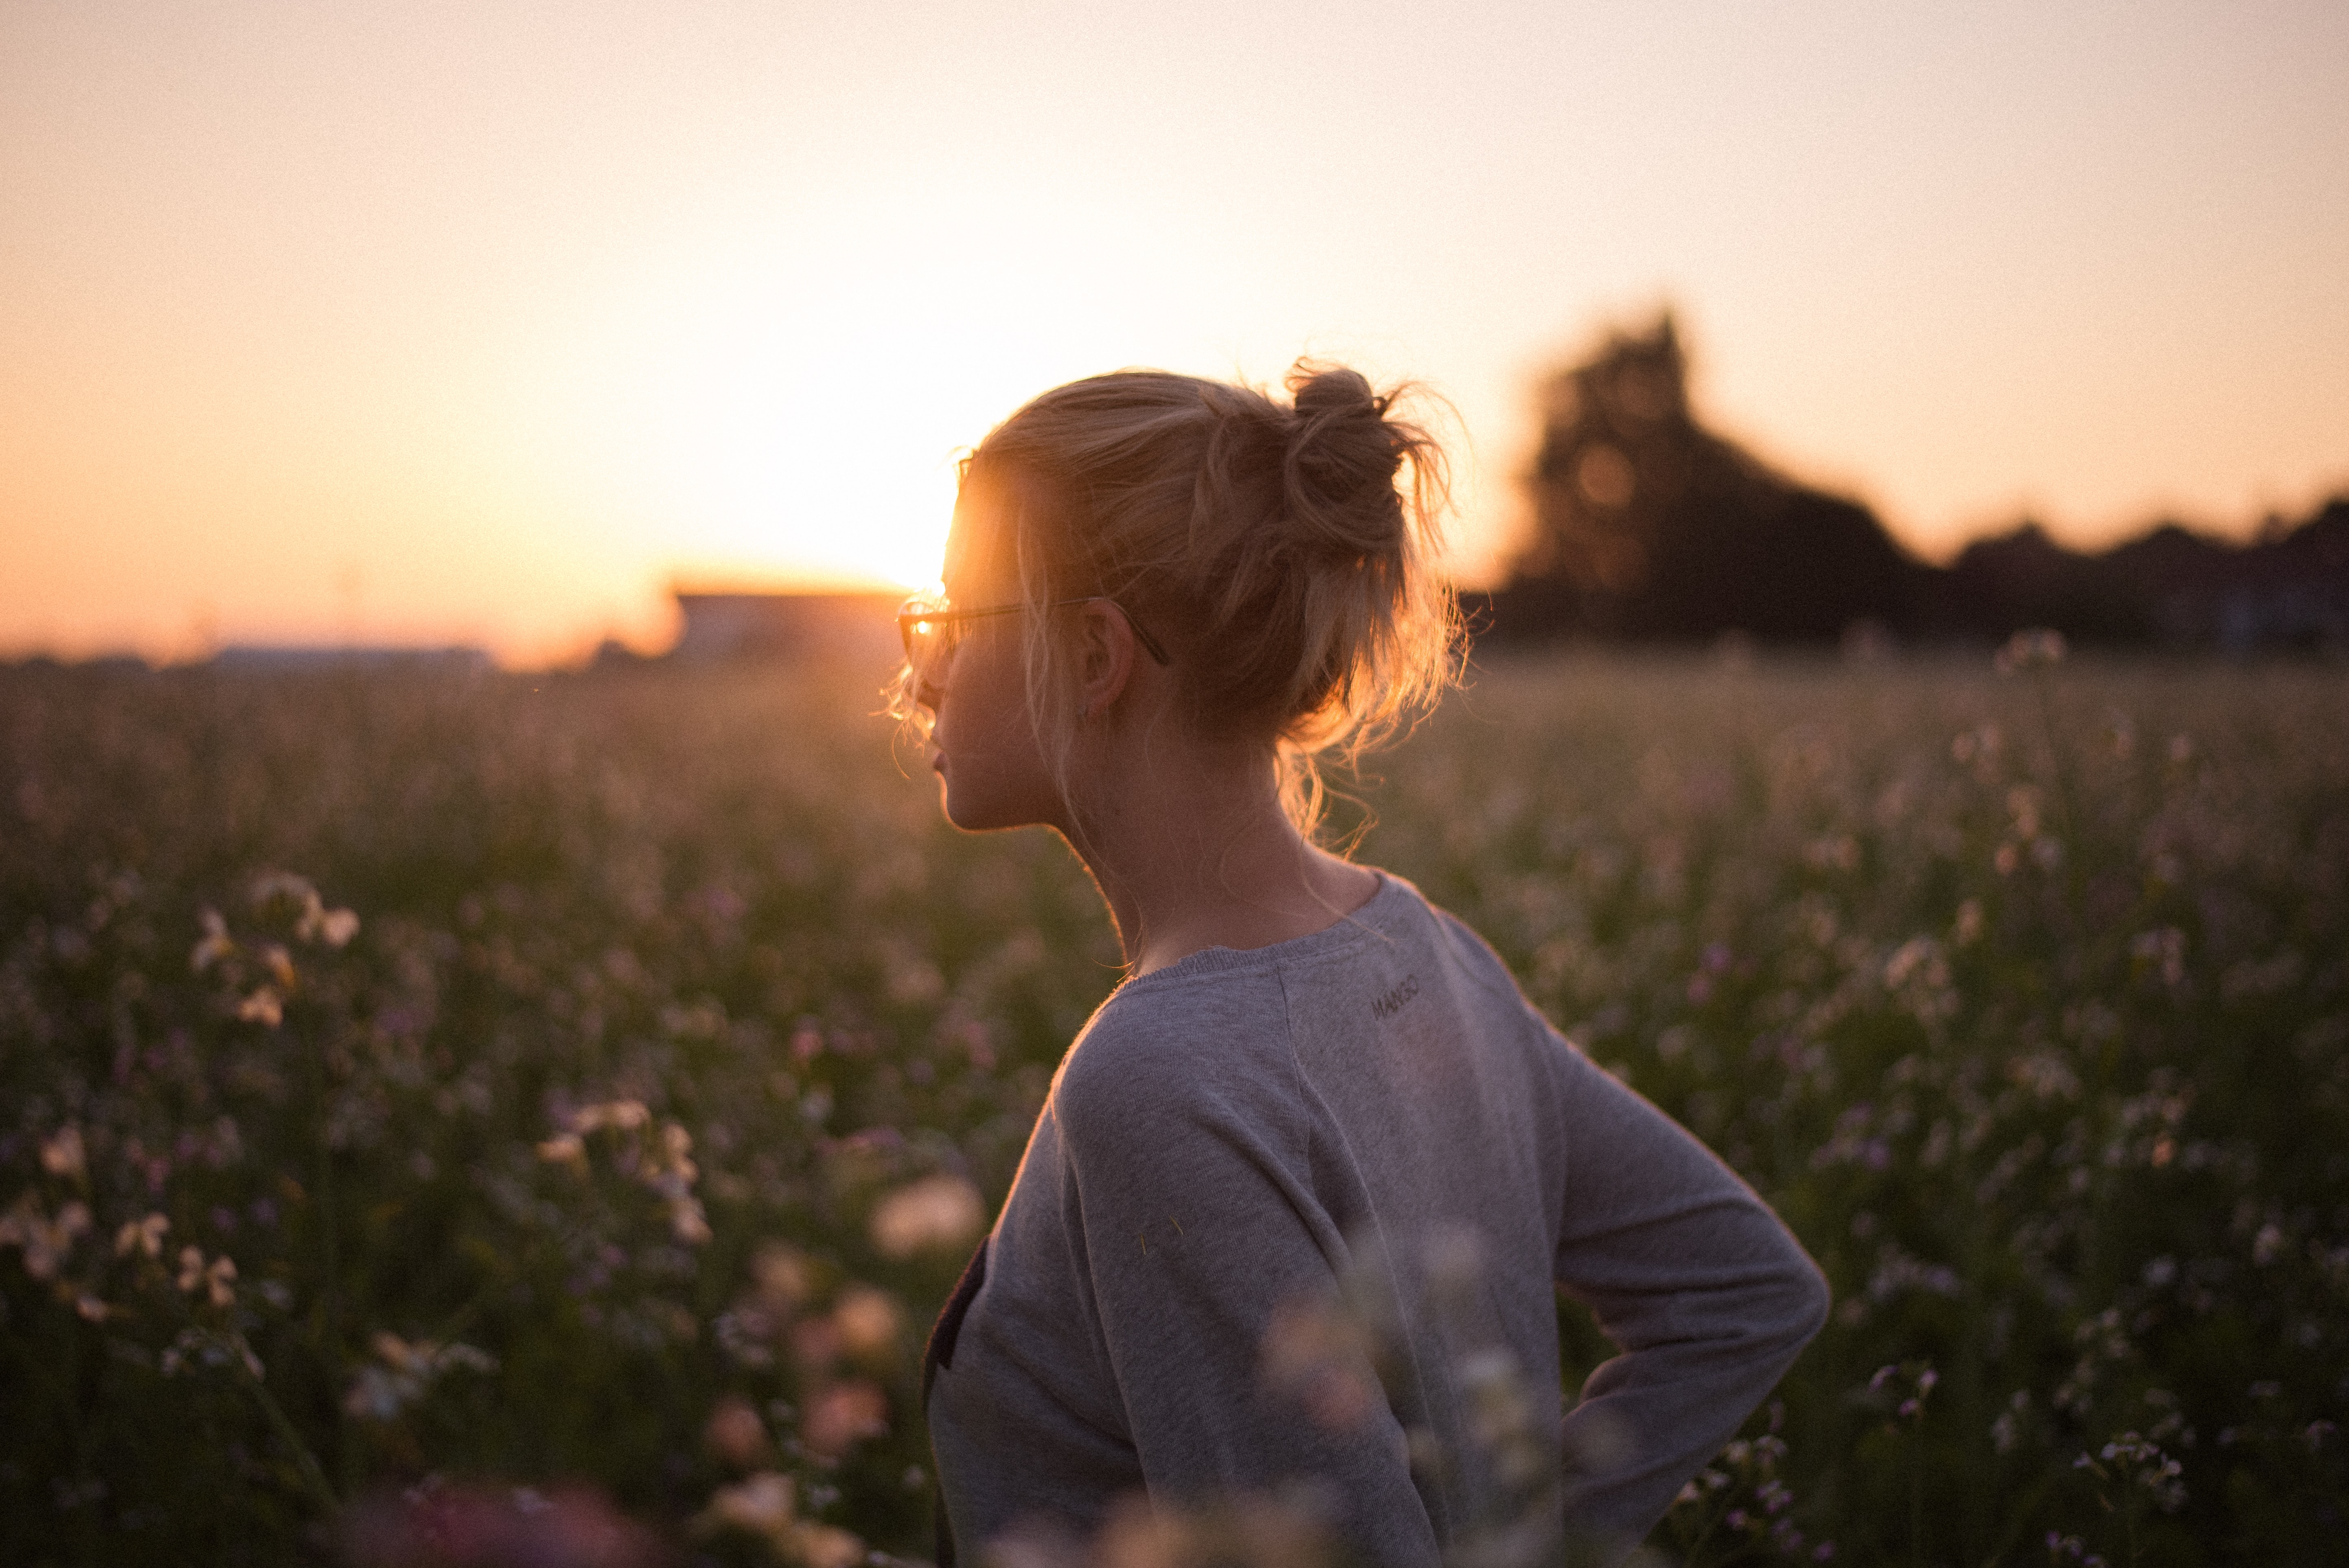 Woman in a messy bun and glasses standing in a field alone at sunset